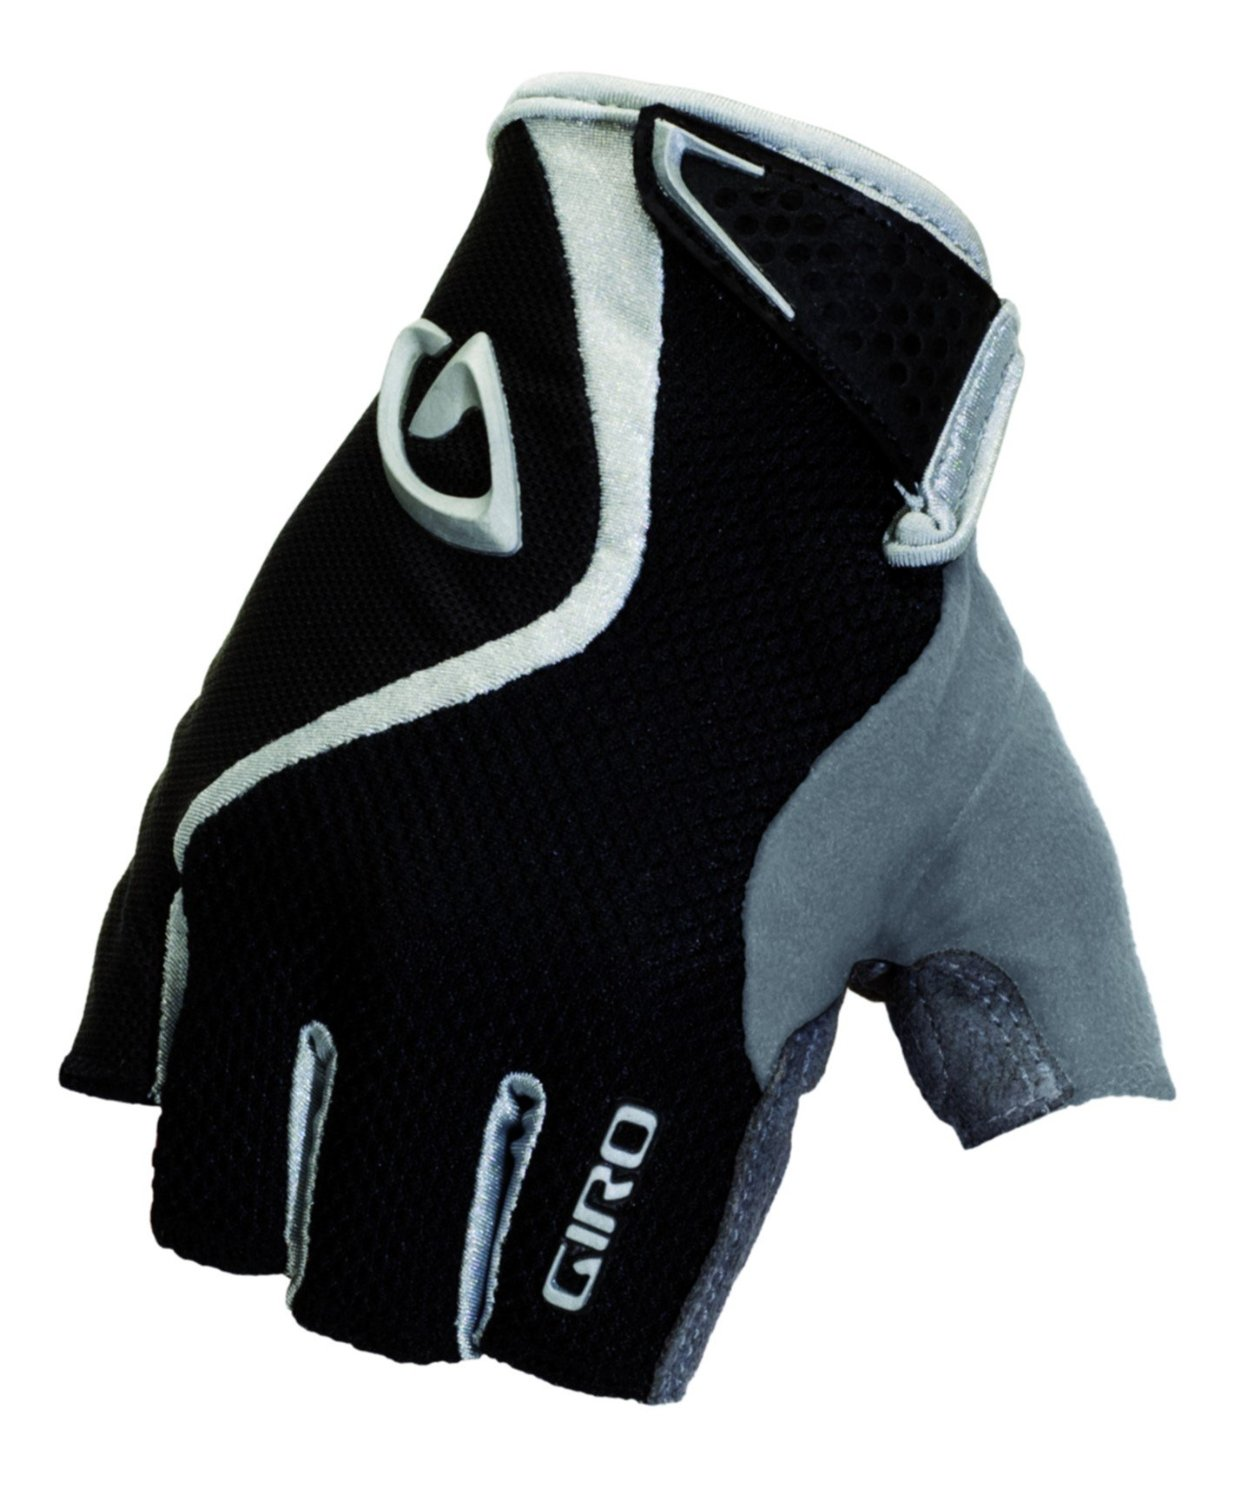 Giro Tessa Women's Cycling Gloves